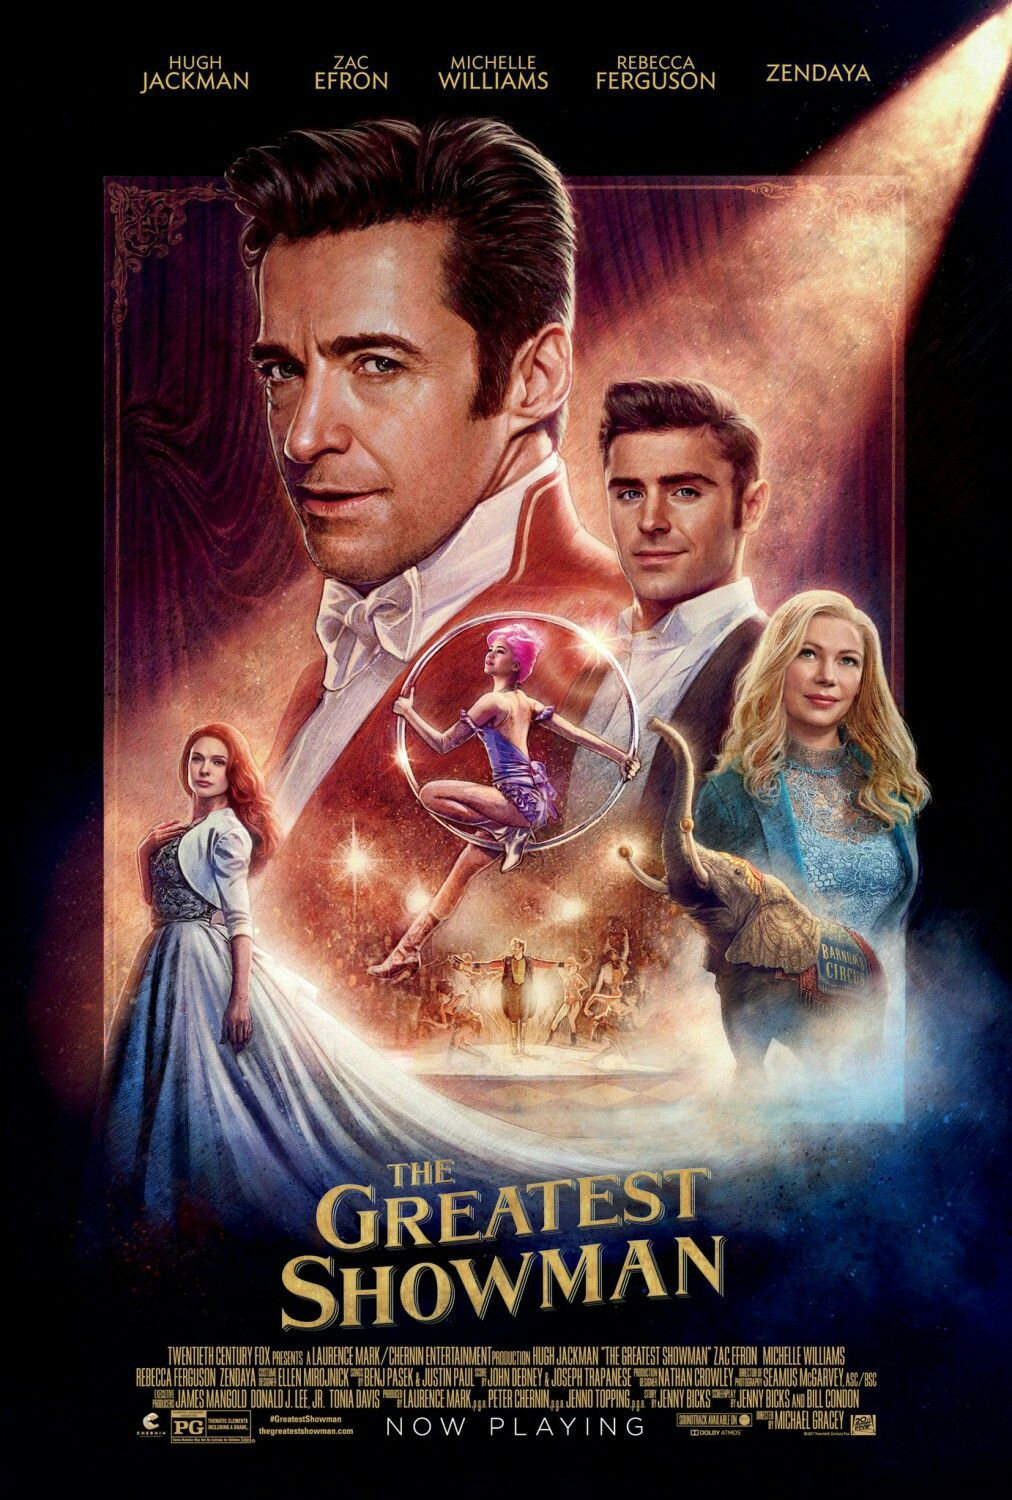 The Greatest Showman Movie Poster Movieposter Scifi Moviereview Movietwit Movieposters Adventure Scififantas Posteres De Filmes Posters De Filmes Filmes